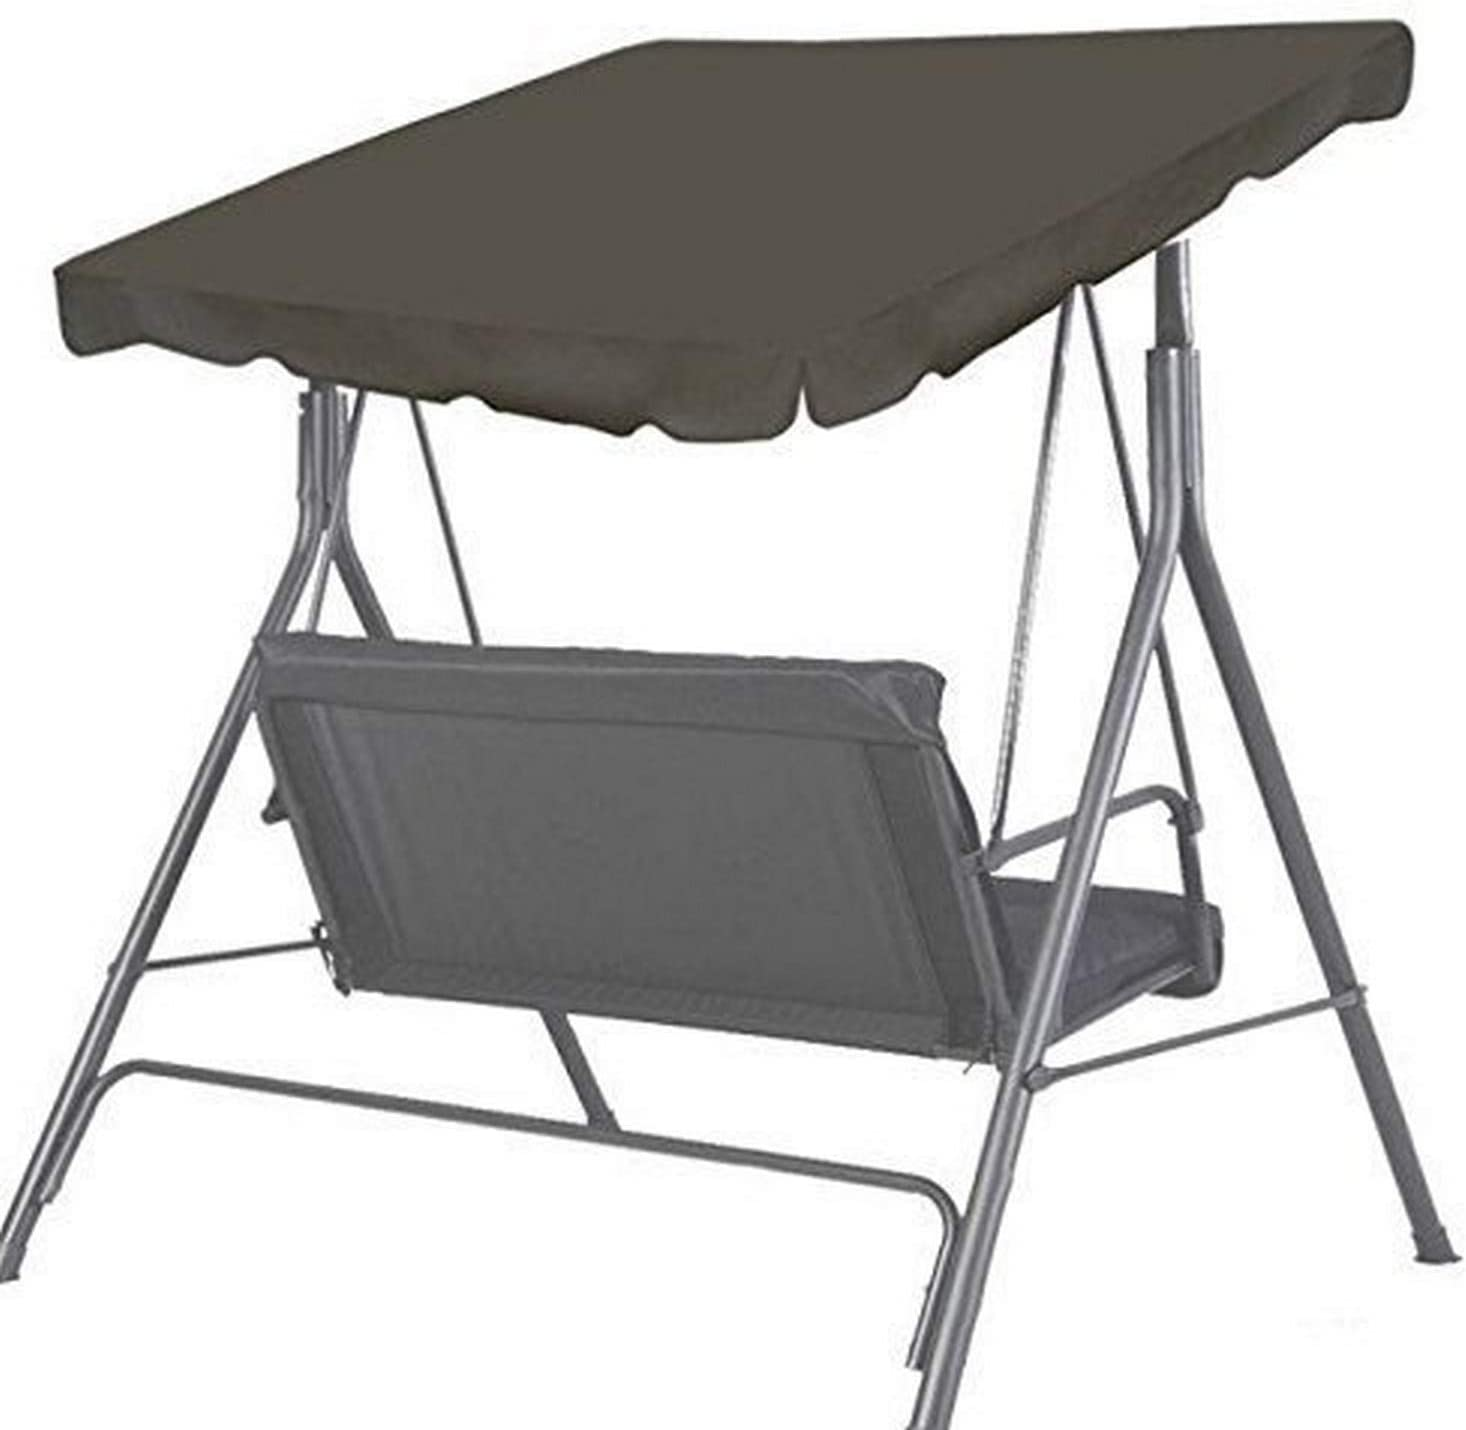 "BenefitUSA Patio Outdoor 73""x52"" Swing Canopy Replacement Porch Top Cover Seat Furniture (Taupe)"